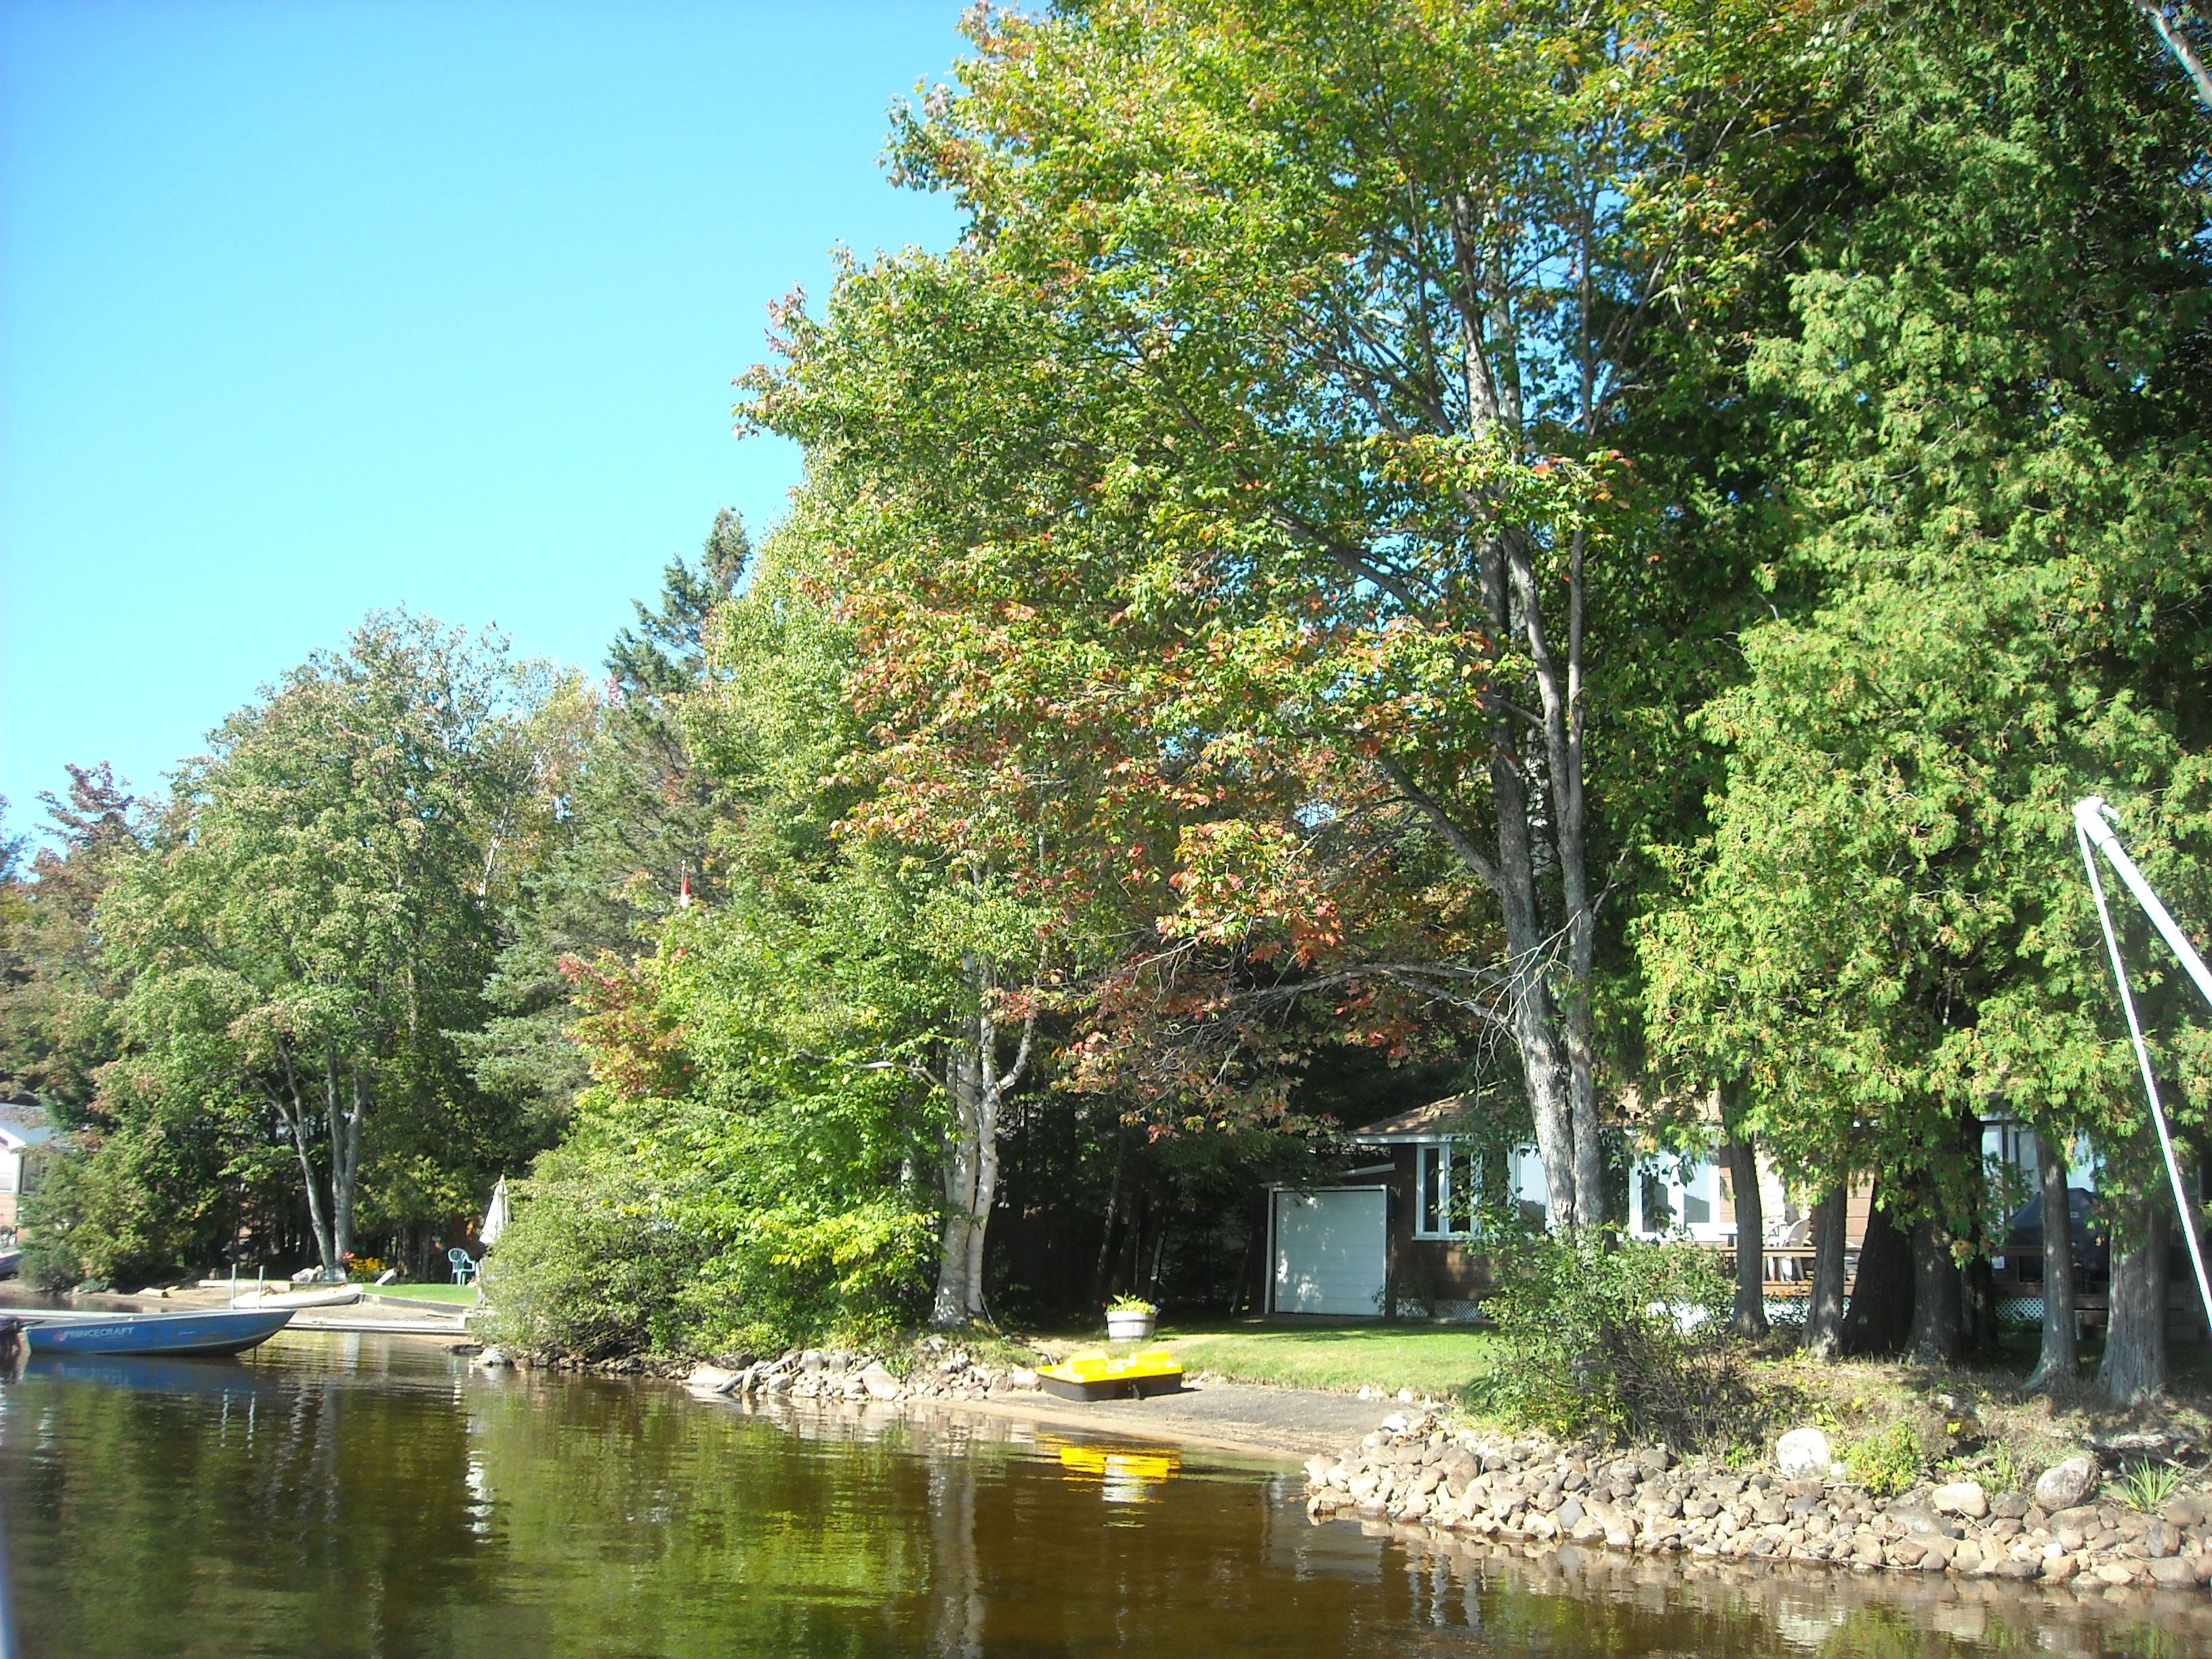 townline cabin michele cabins find harrison rentals rental lake cottage vacation houghton lakefront